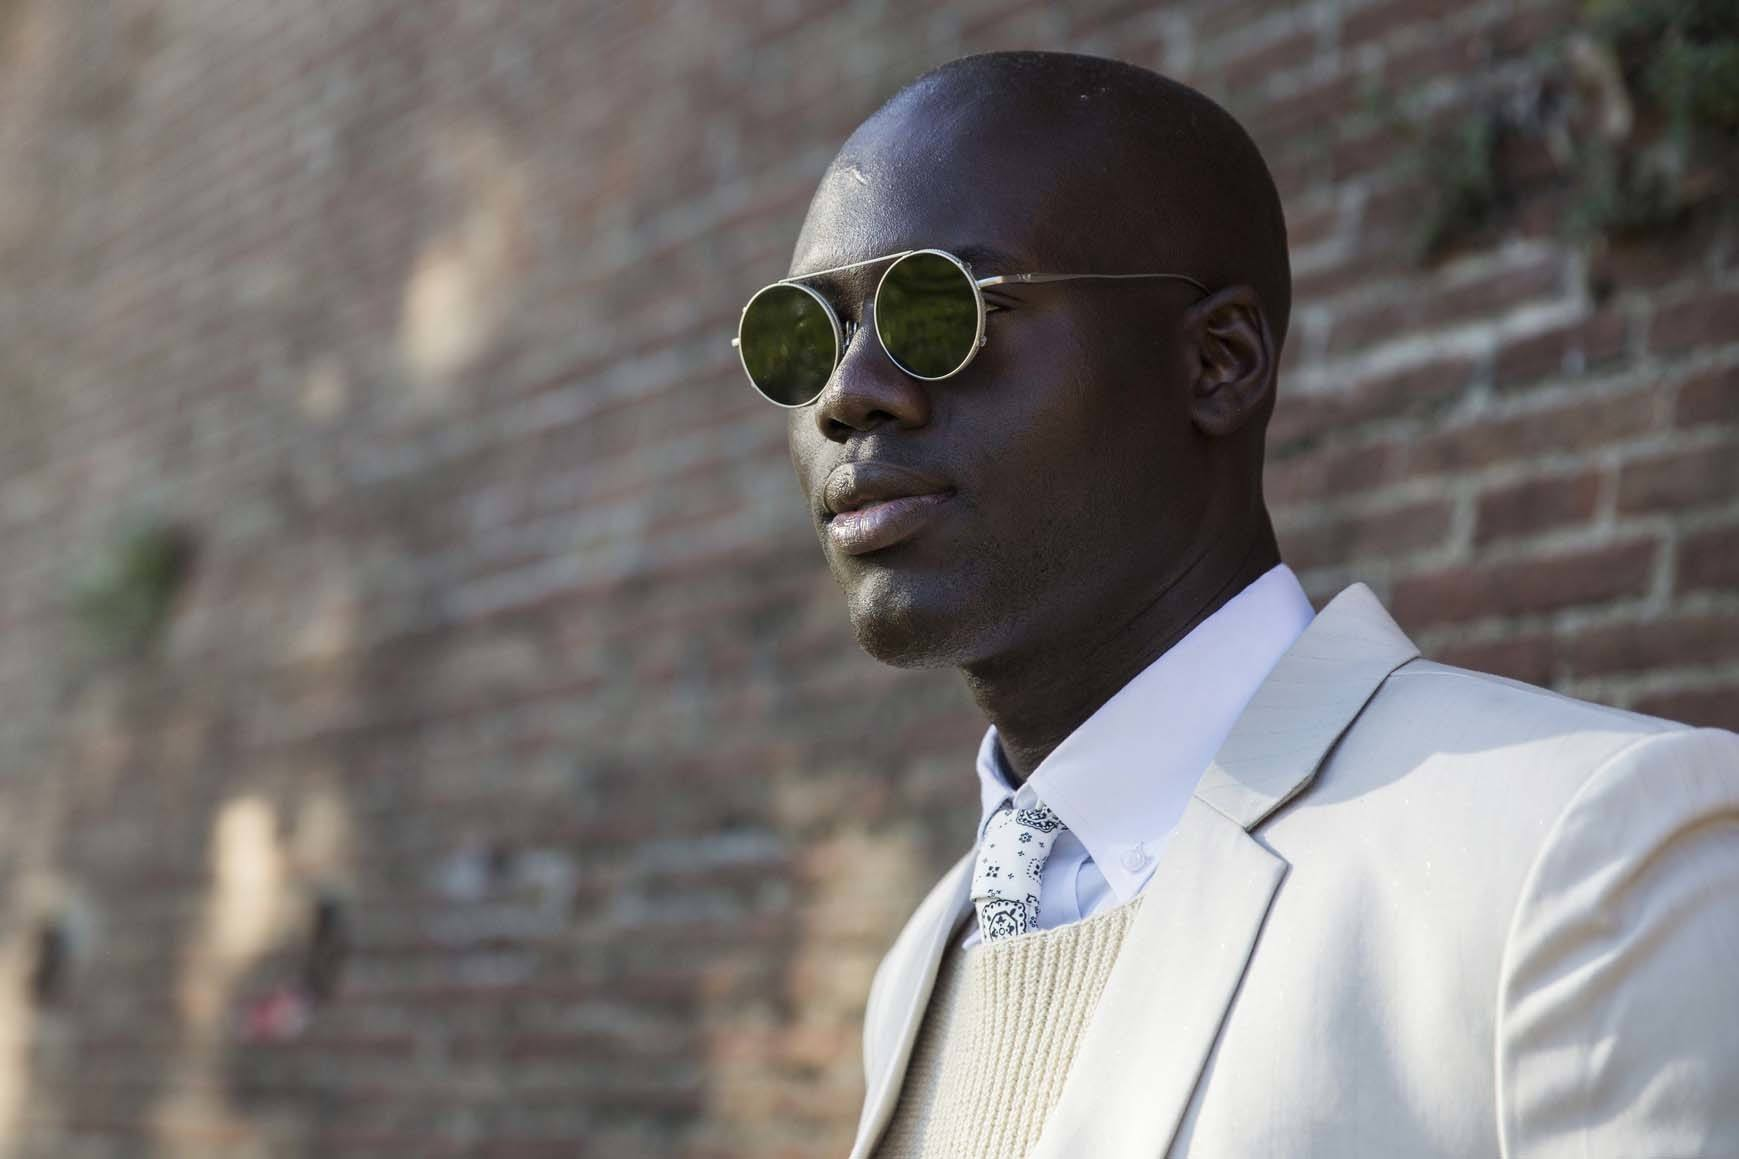 Black man with shaved head and sunglasses outside